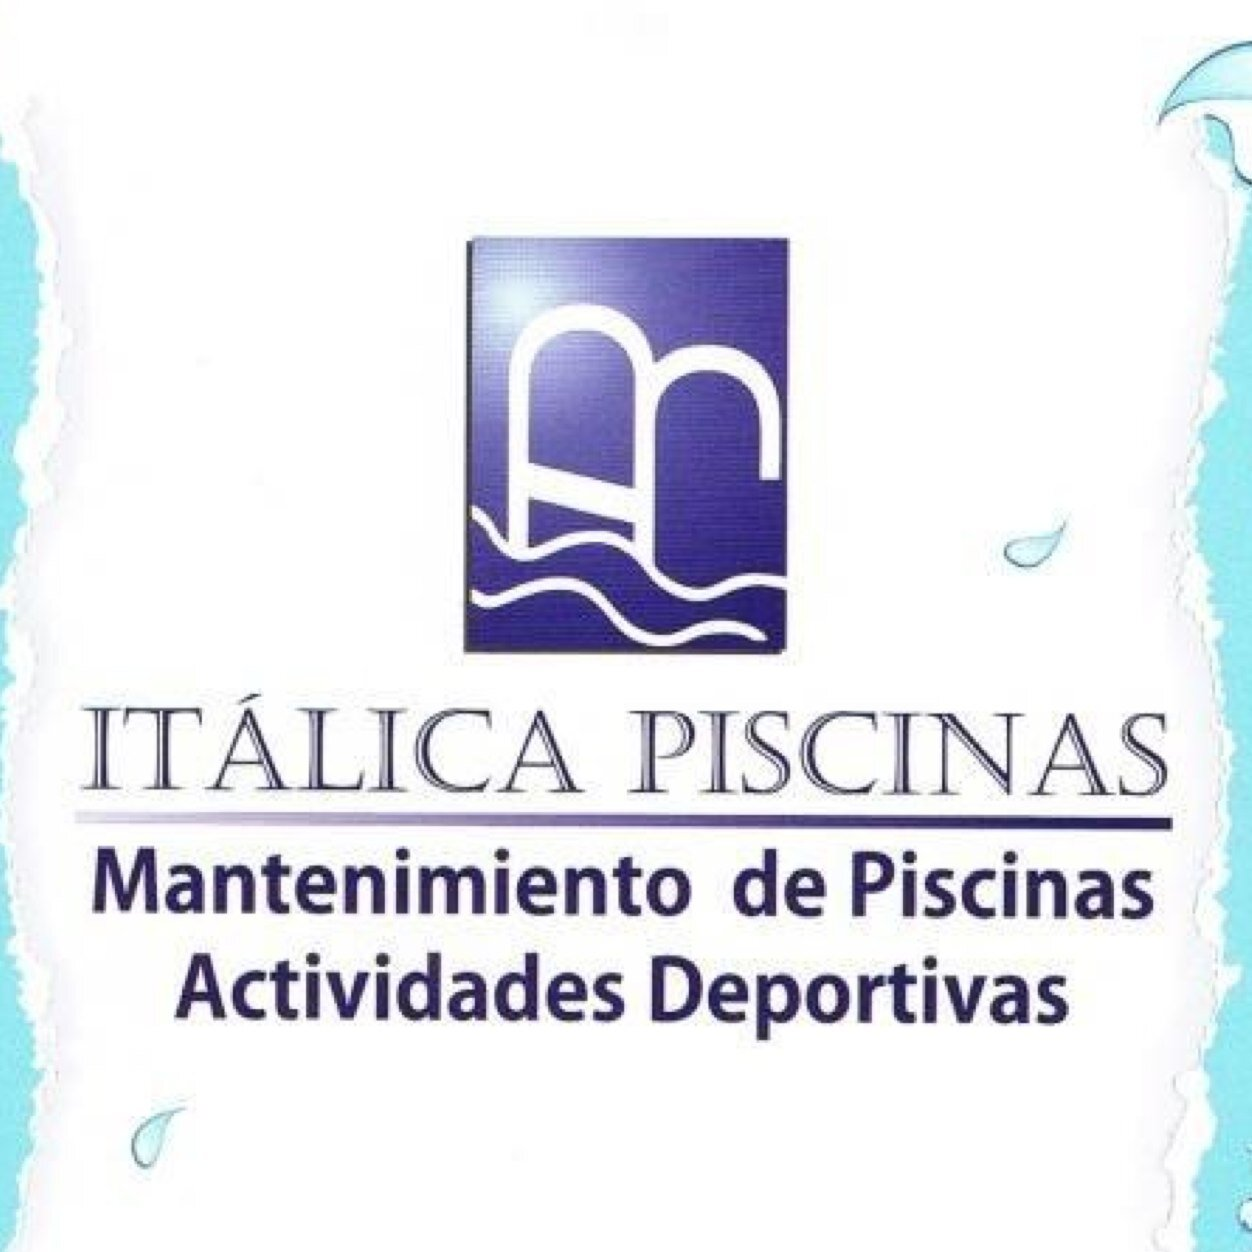 it lica piscinas italicapiscinas twitter